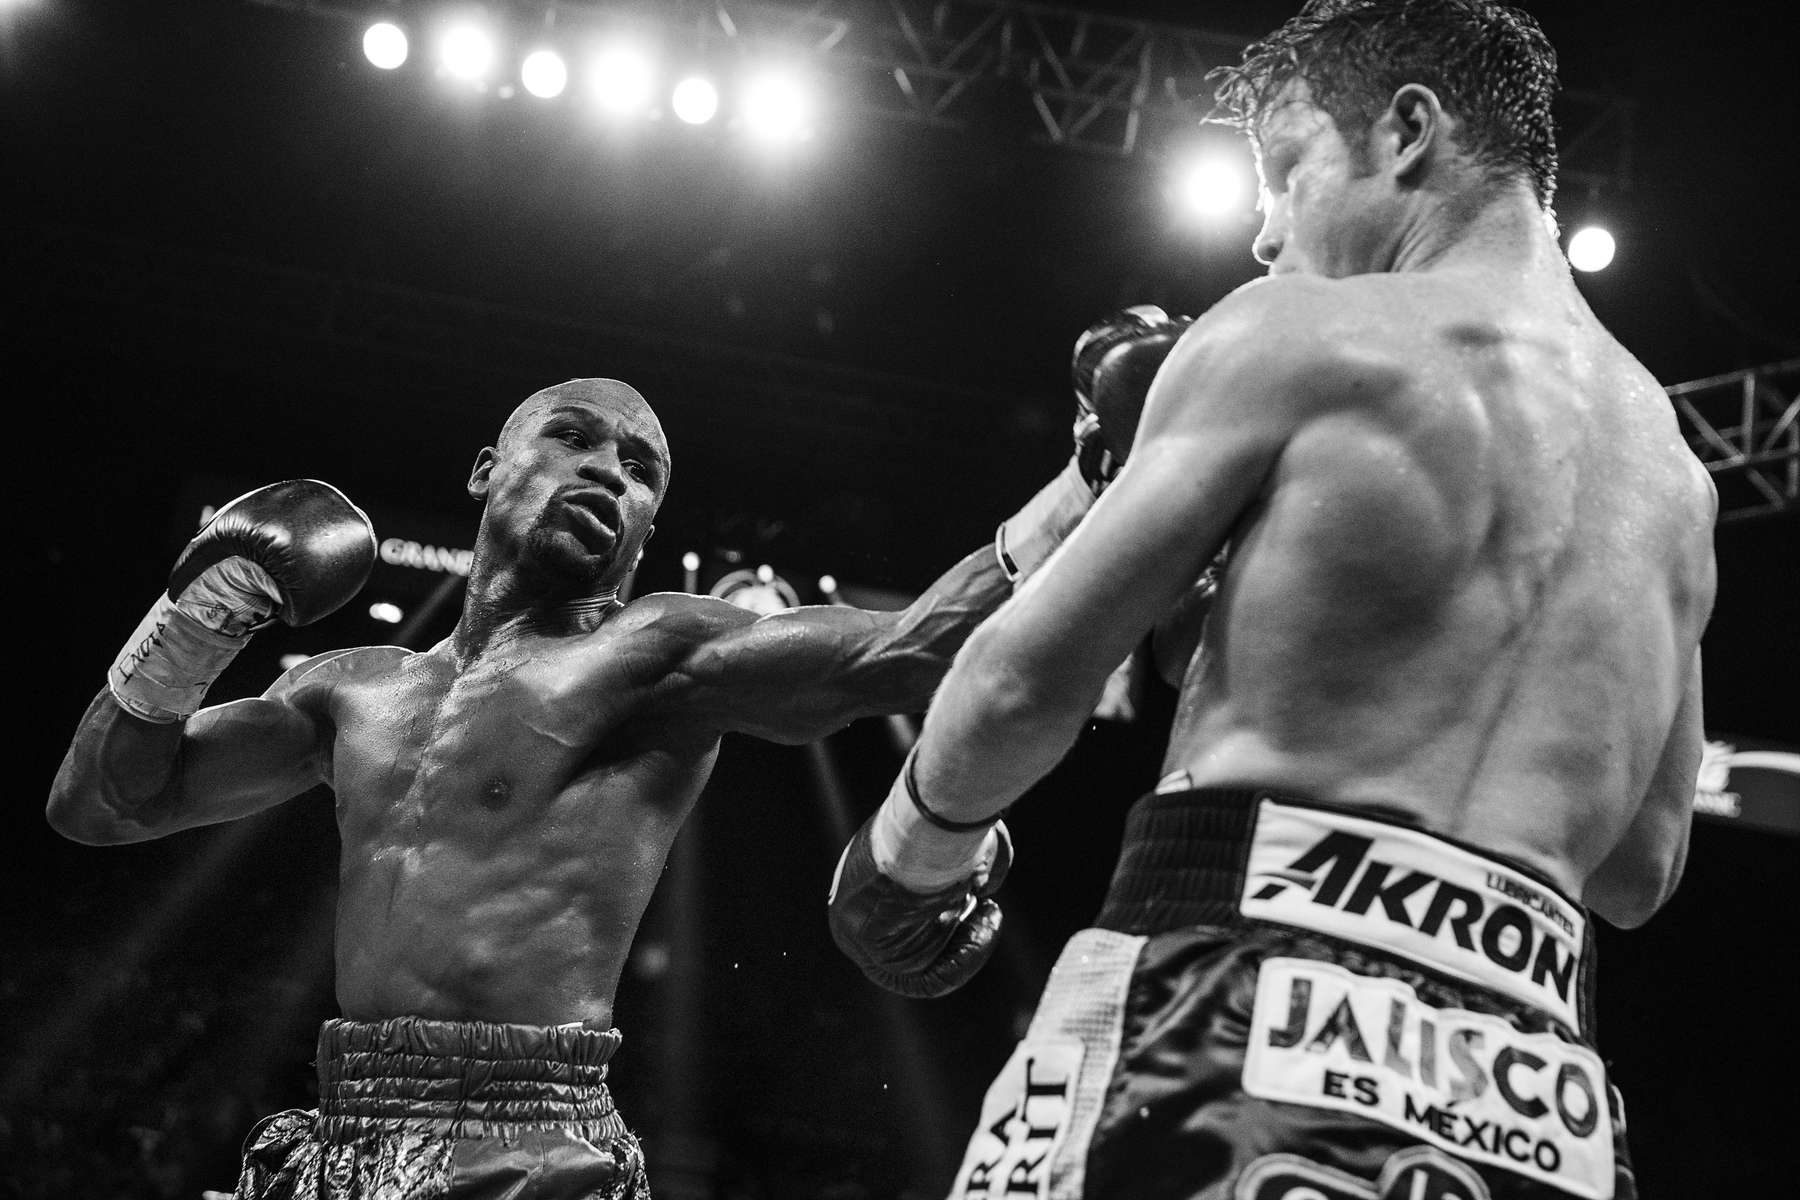 LAS VEGAS, NV - SEPTEMBER 14: Mayweather lands a hard left jab to the head of Alvarez during his dominating performance. (Photo by Benjamin Lowy/Reportage by Getty Images)